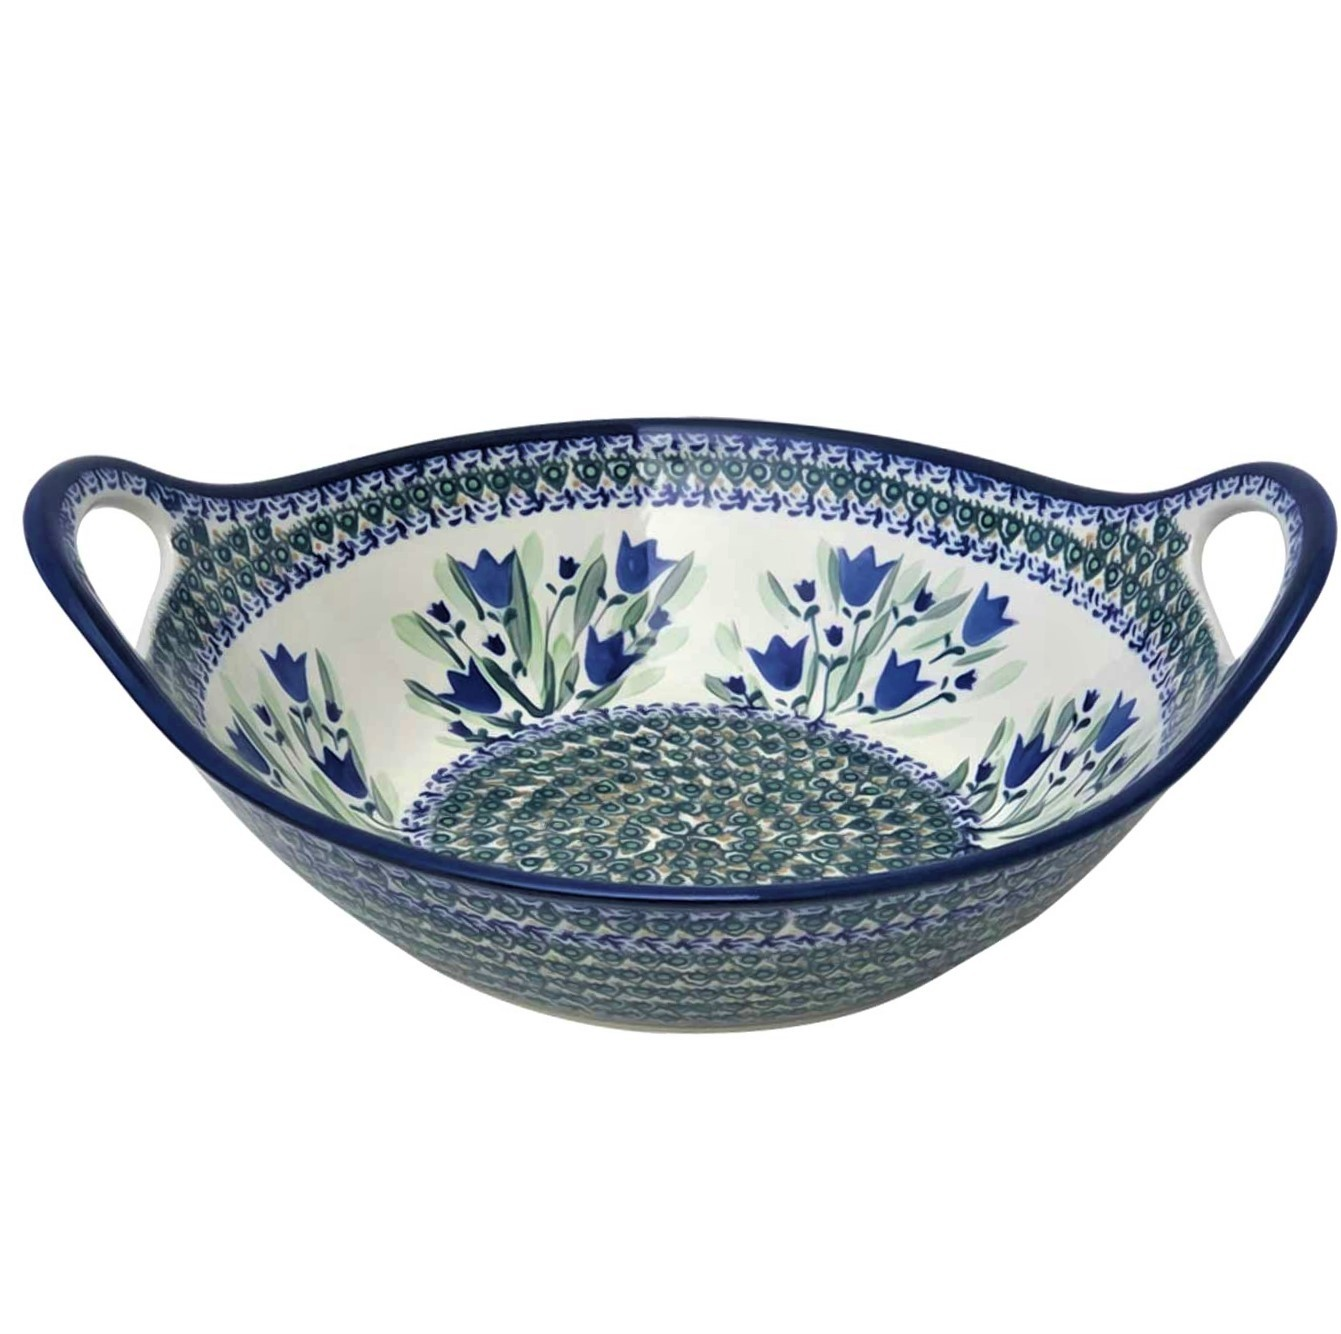 Pottery Avenue 13-inch Handled Stoneware Baker-Serving Bowl - 1347-160AR Blue Tulip